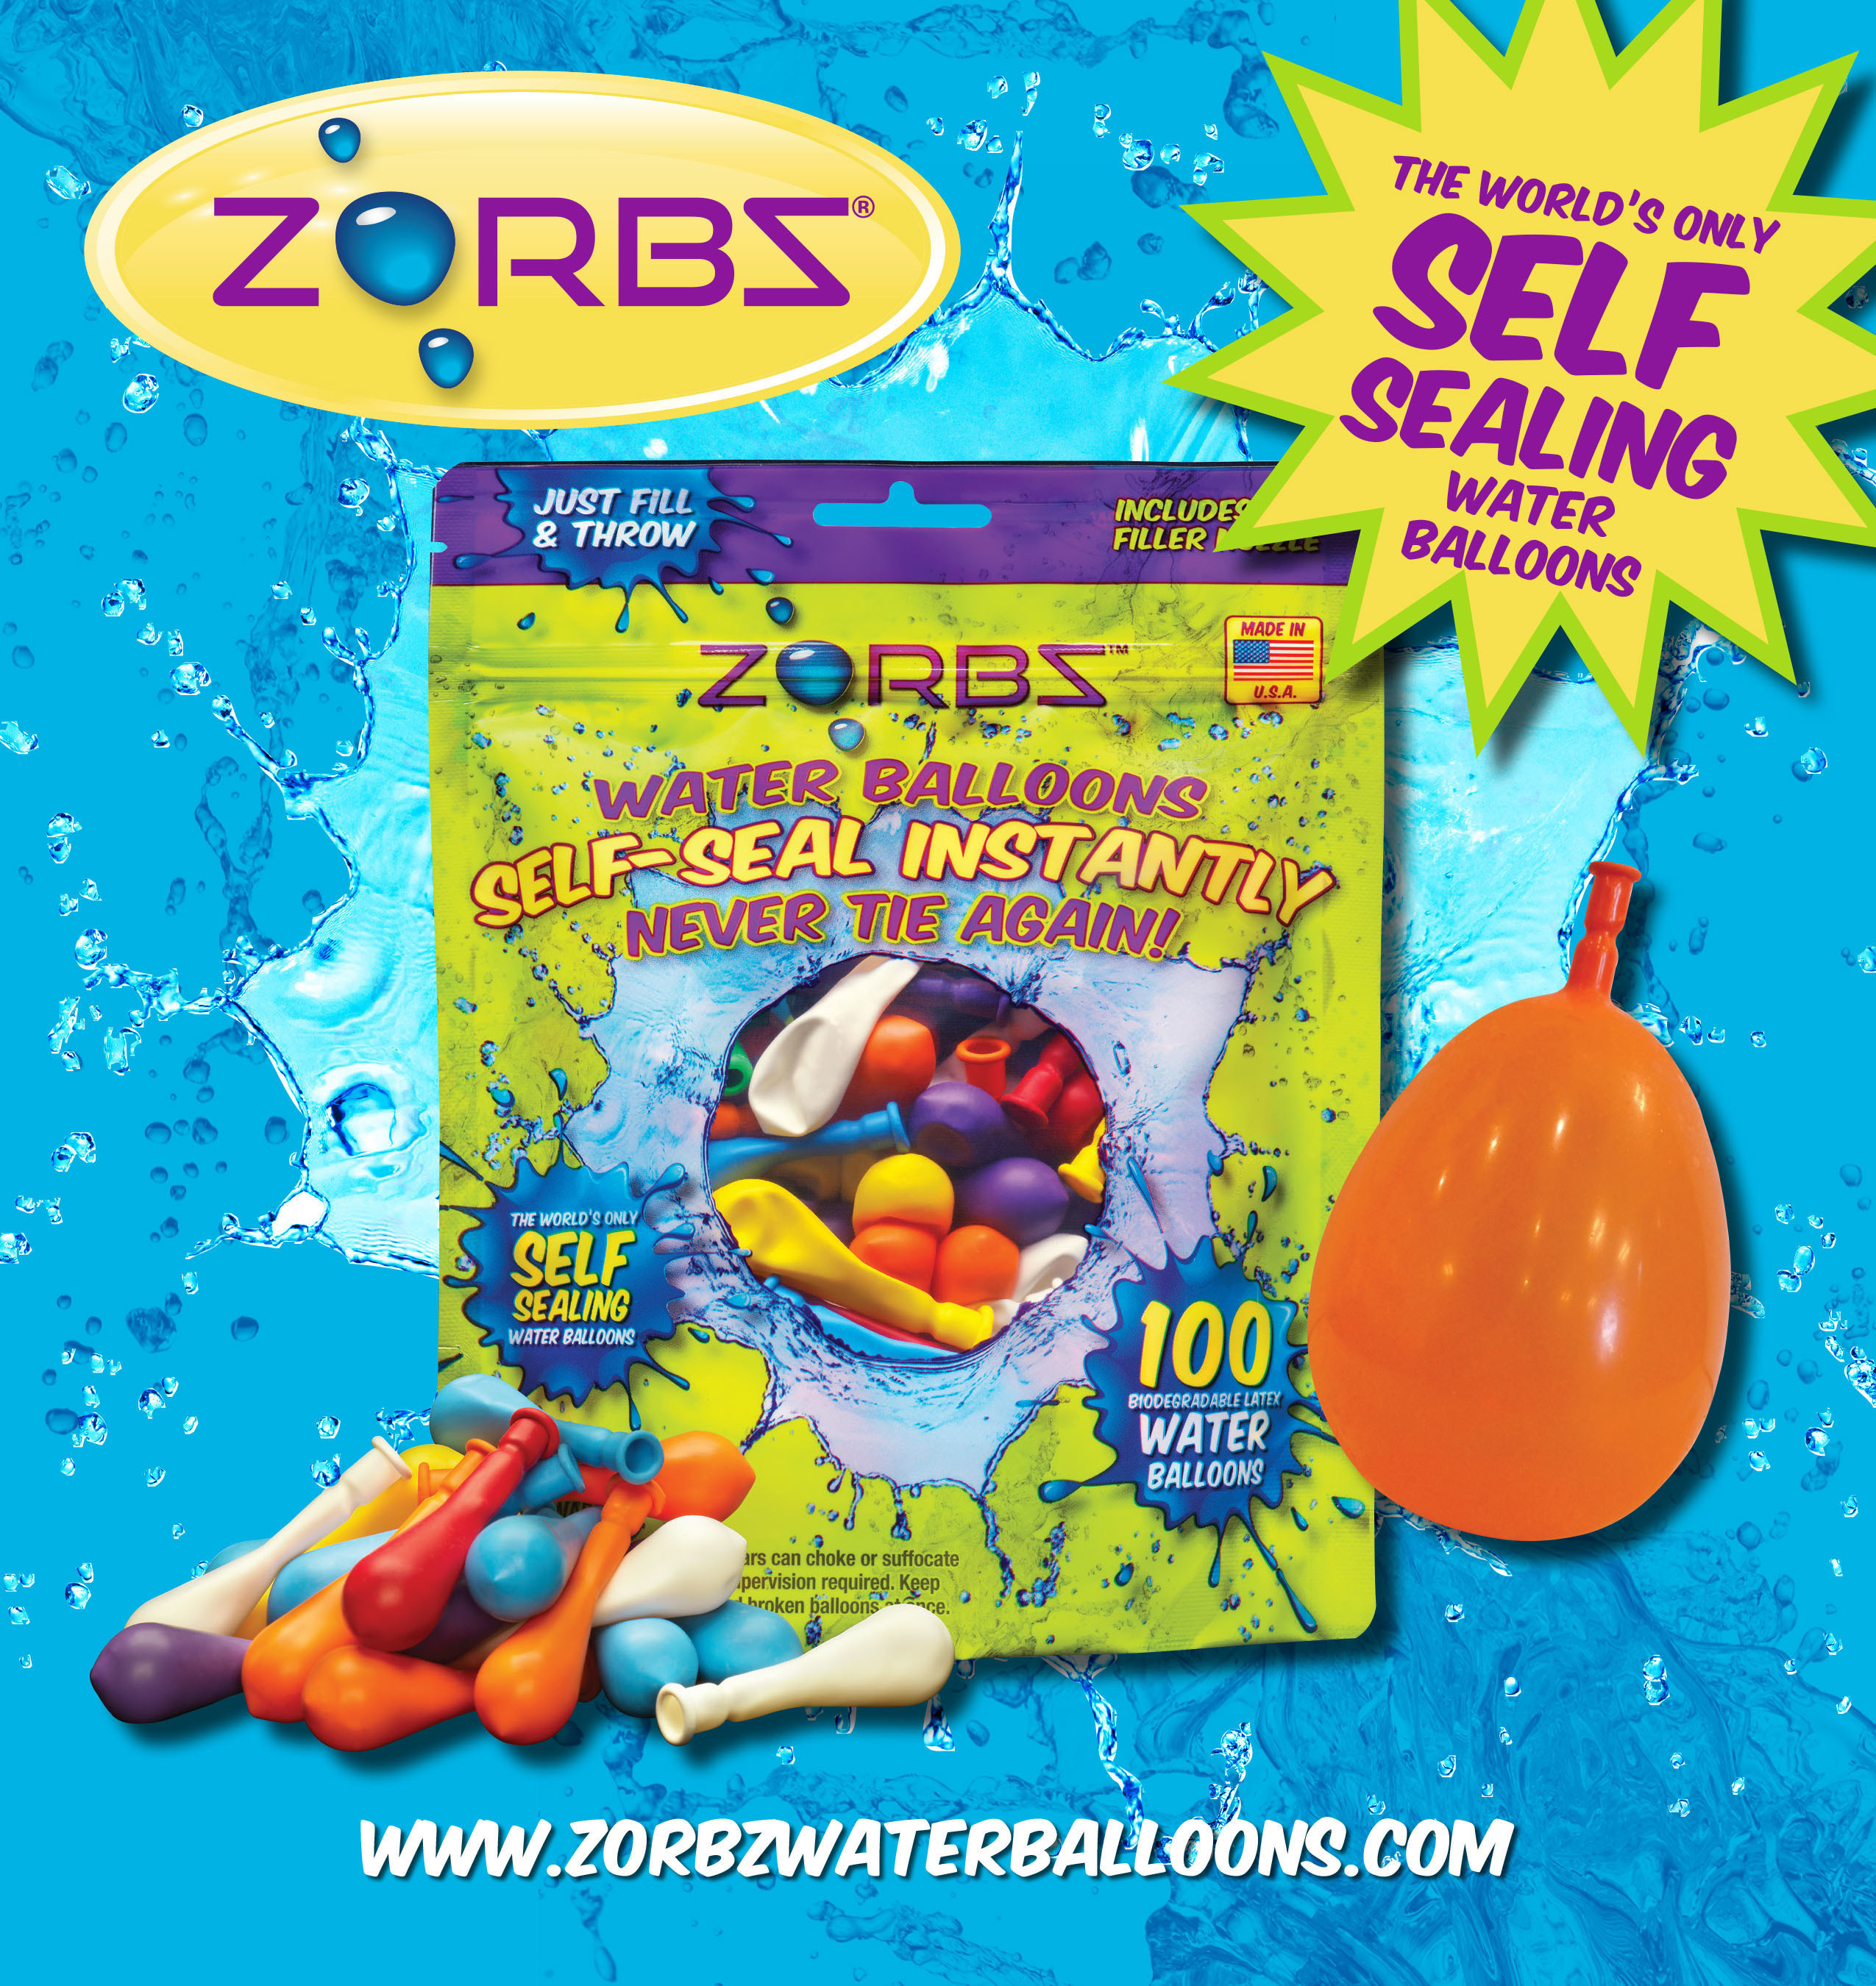 ZORBZ(R) is the world's first self-sealing water balloon. Its patented Insta-Seal(TM) technology eliminates the pain and frustration involved with tying water balloons. ZORBZ truly adds hours of fun to spend outdoors with the family and ensures you will never have to tie a water balloon again! Check out the new Combat Toy Line at the Hydro Toys, LLC booth #6269 at the New York Toy Fair, February 14-17th. These toys blast away the competition and open up a whole new way to have fun this summer!